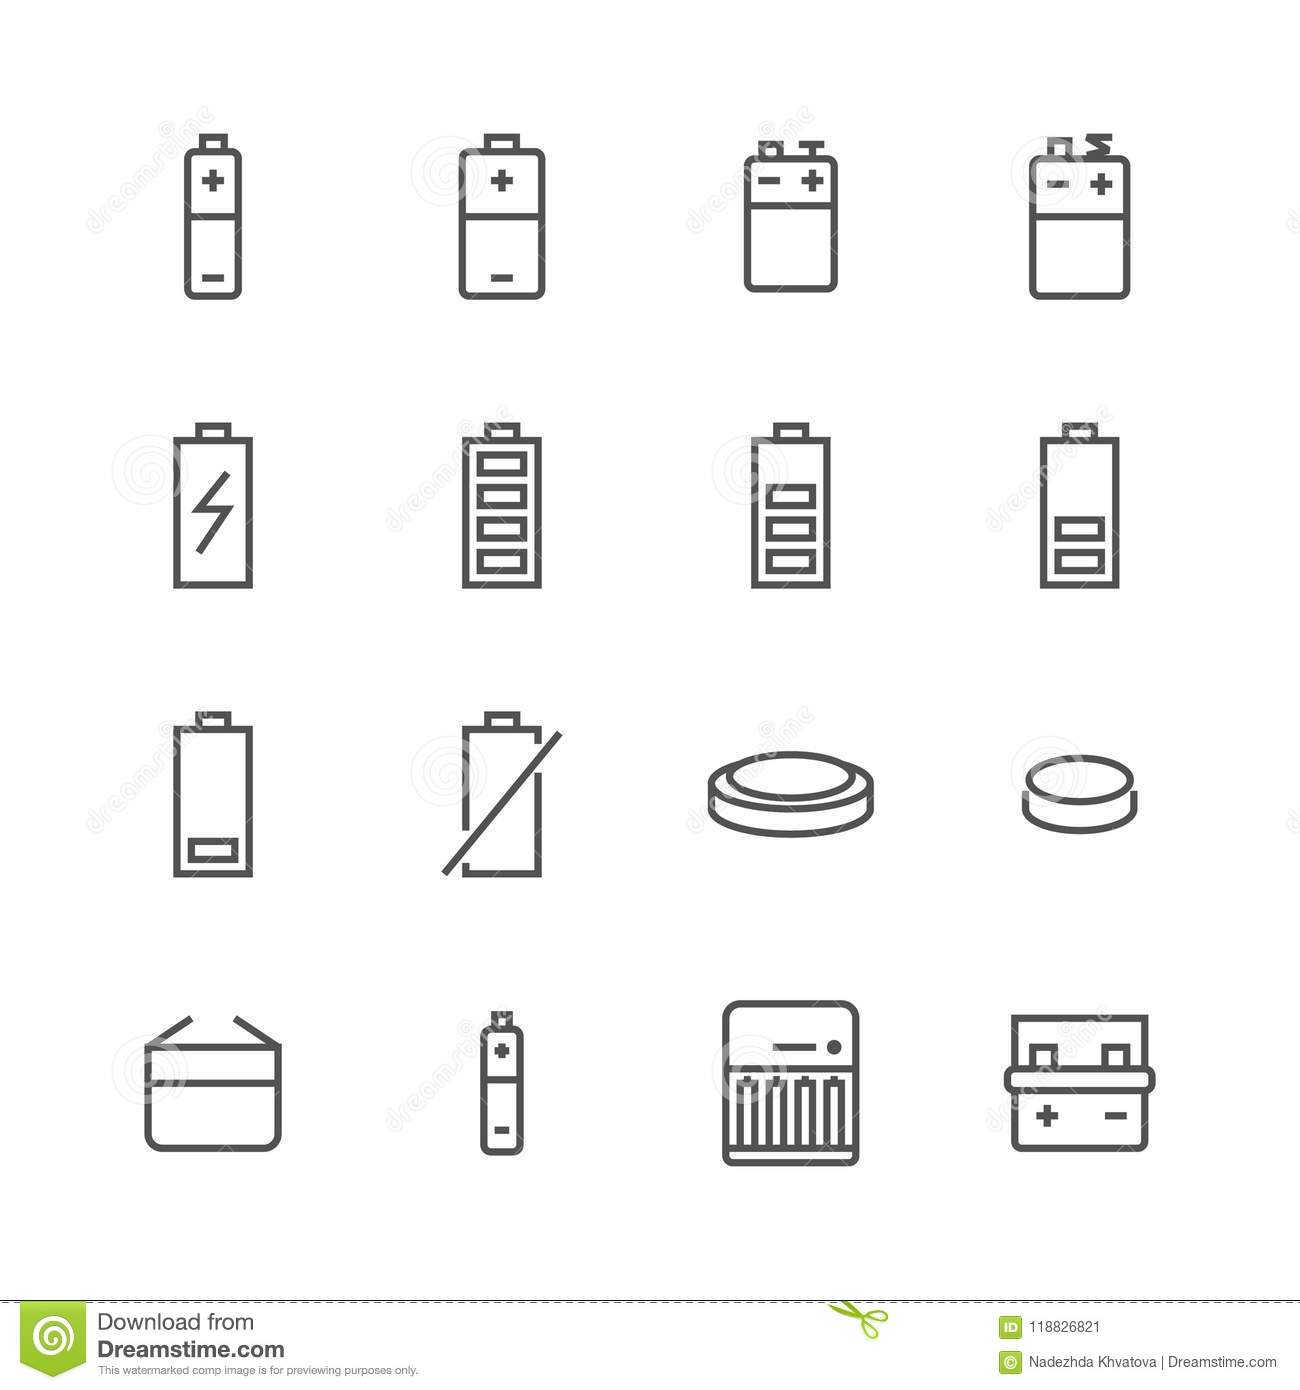 Battery flat line icons. Batteries varieties illustrations - aa, alkaline, lithium, car accumulator, charger, full